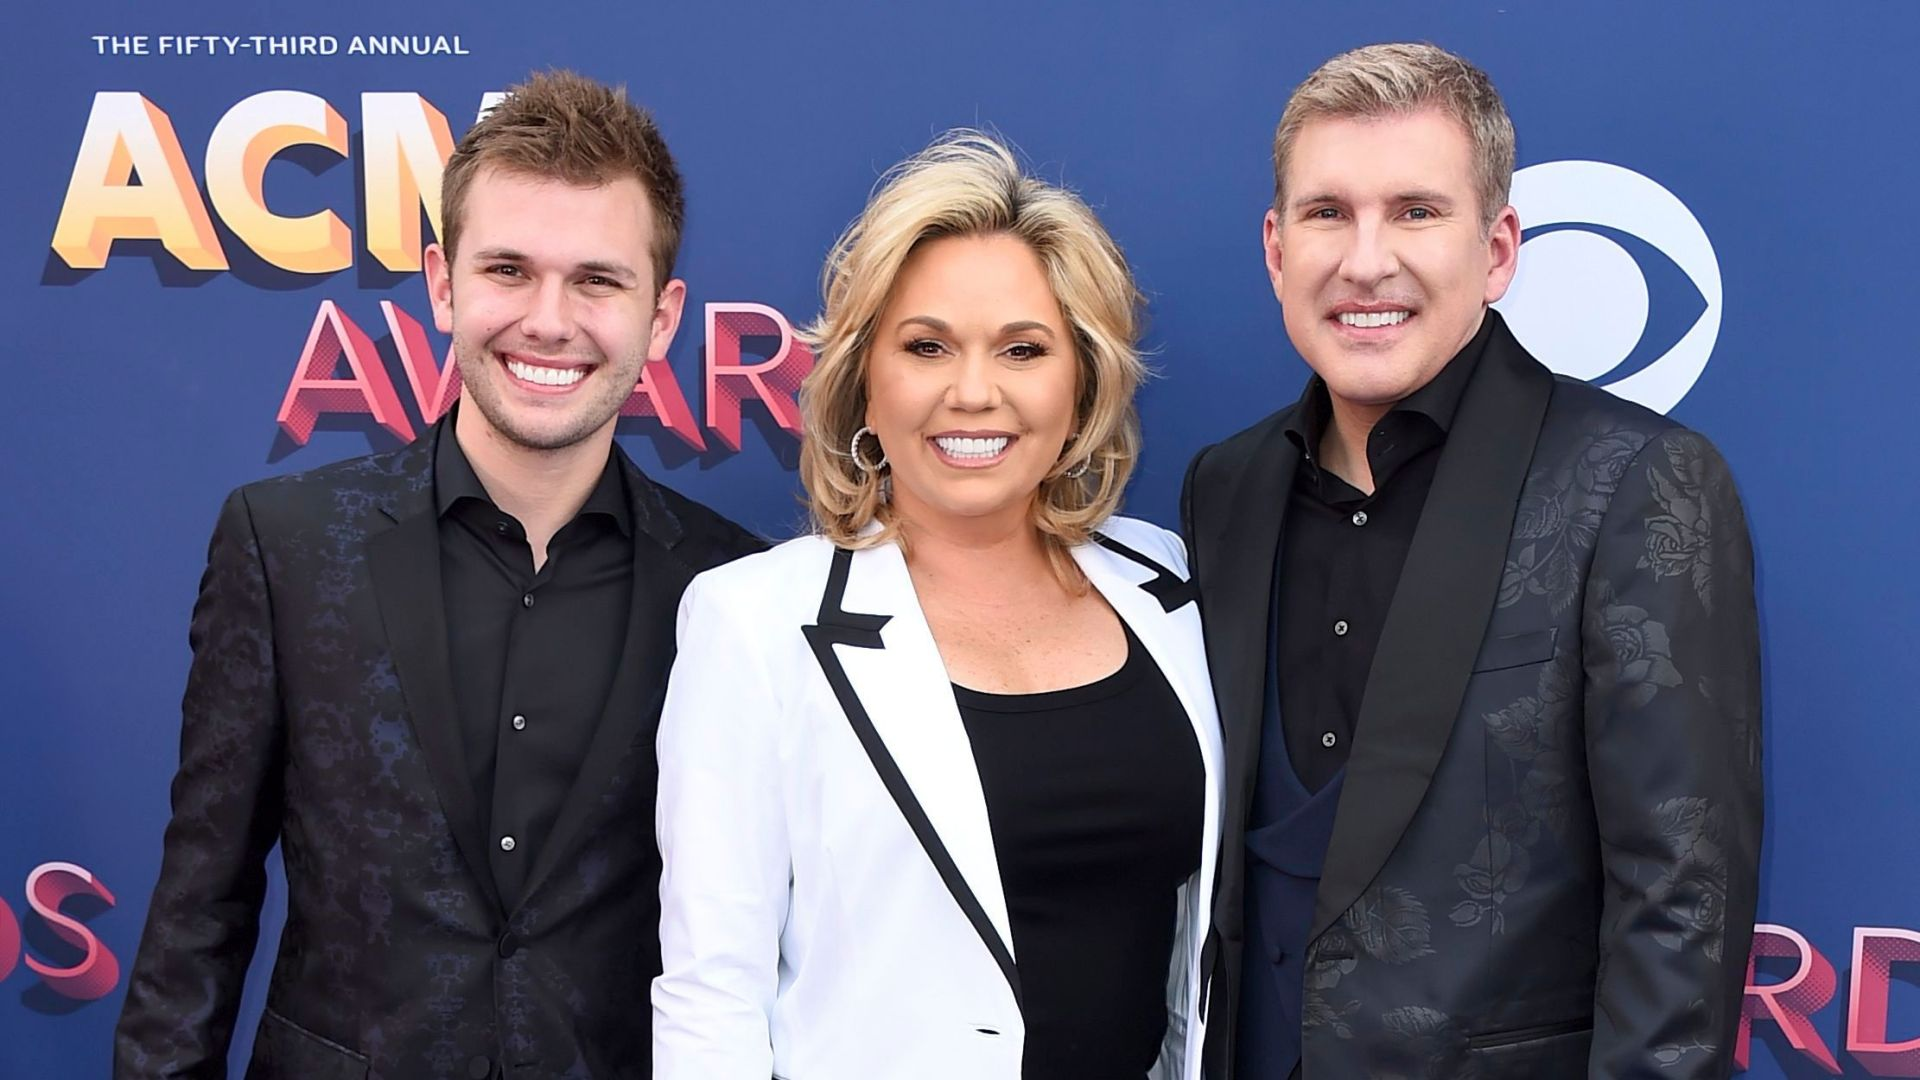 Julie Chrisley Hopes Son Chase Doesn't Get Engaged Any Time Soon: 'We Need a Little More Time'